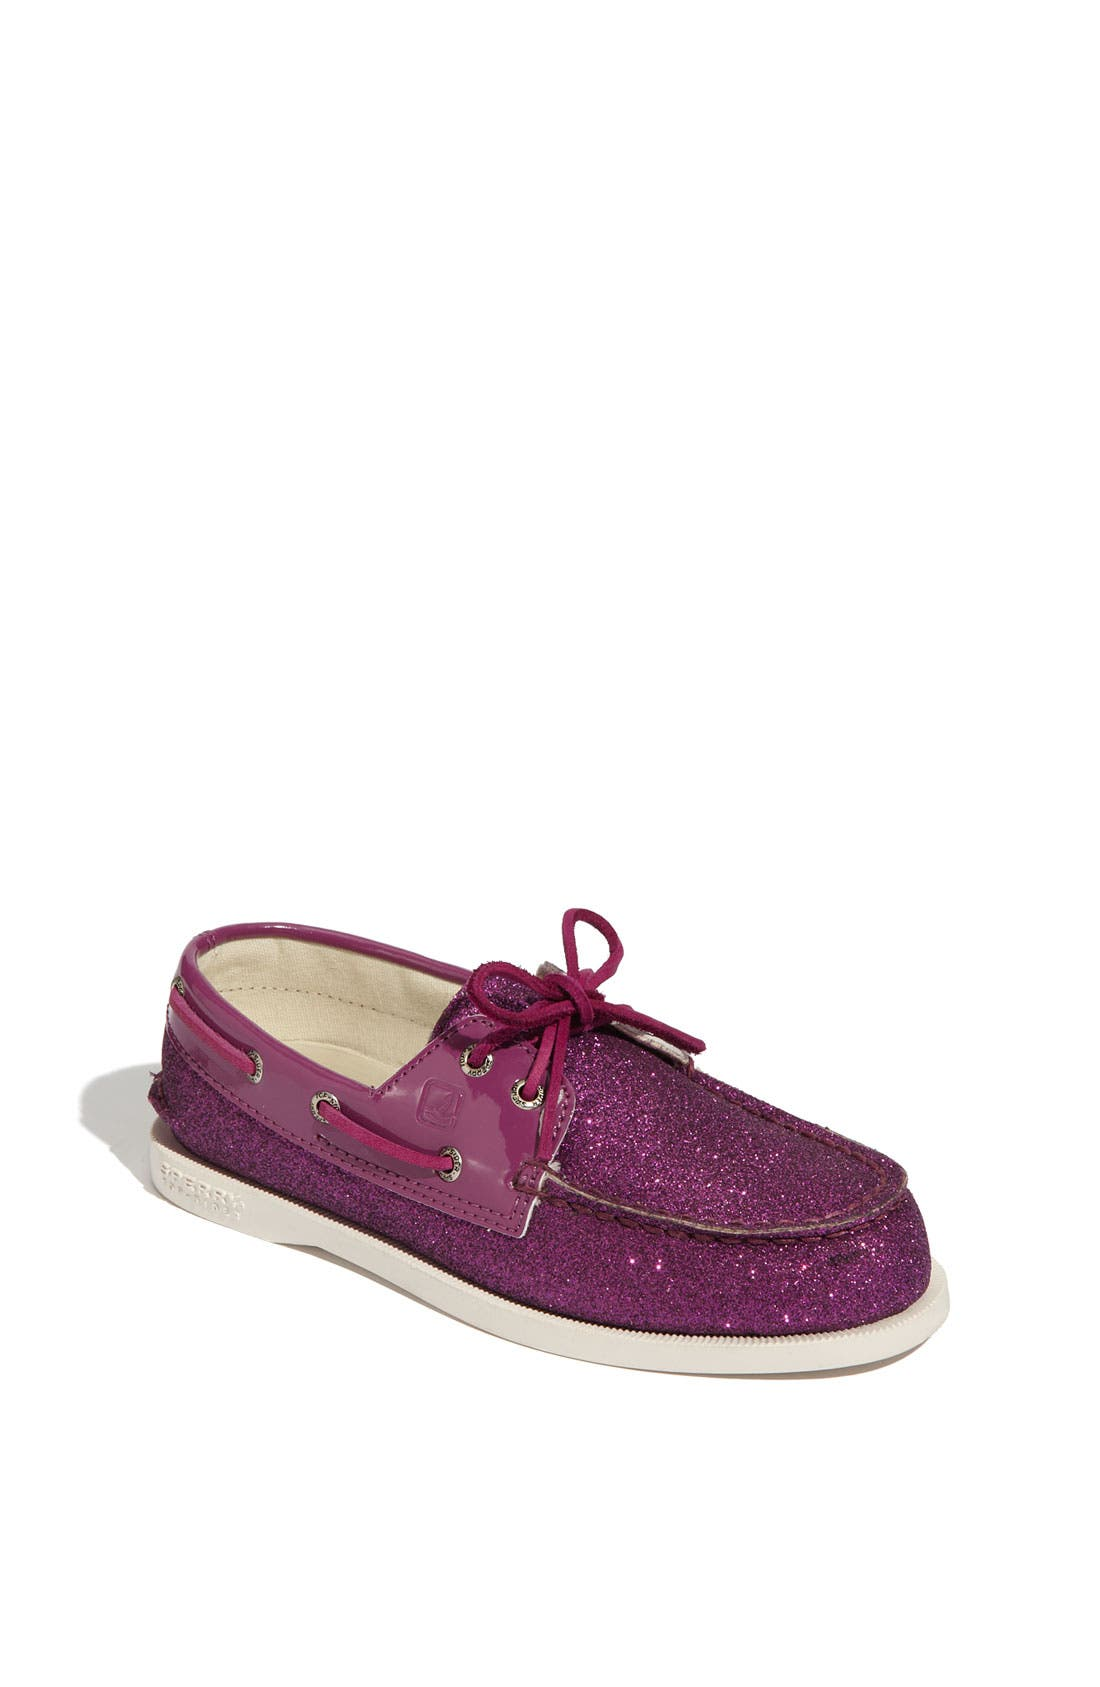 Main Image - Sperry Top-Sider® 'Authentic Original' Glitter Boat Shoe (Toddler, Little Kid & Big Kid)